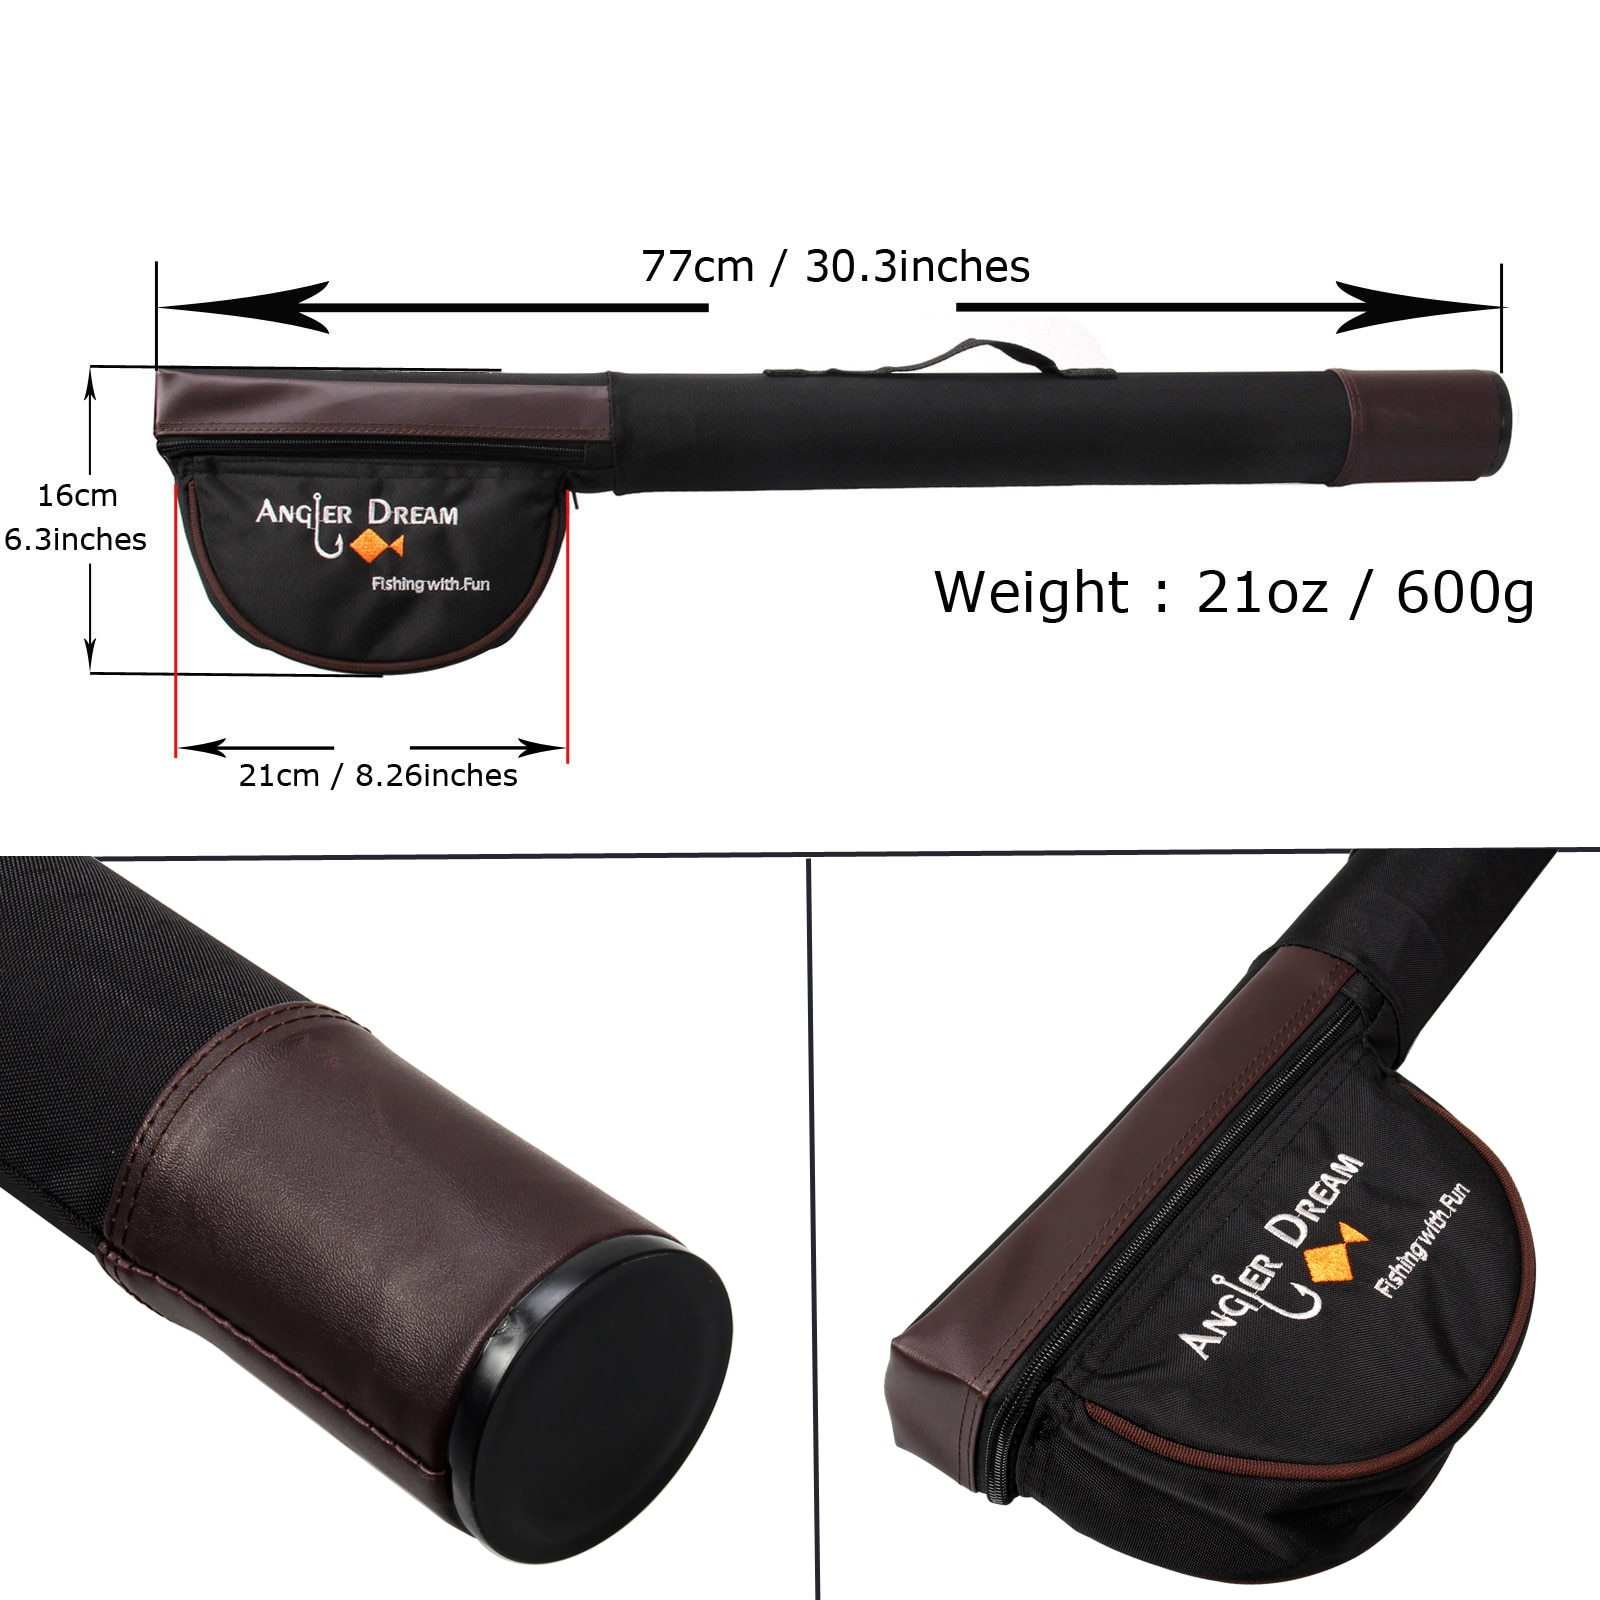 ANGLER DREAM Fly Fishing Rod 30T Carbon Fiber Appliance Accessorie With Fly Fishing Reel And Fly Fishing Line Combo Free Tippet enlarge